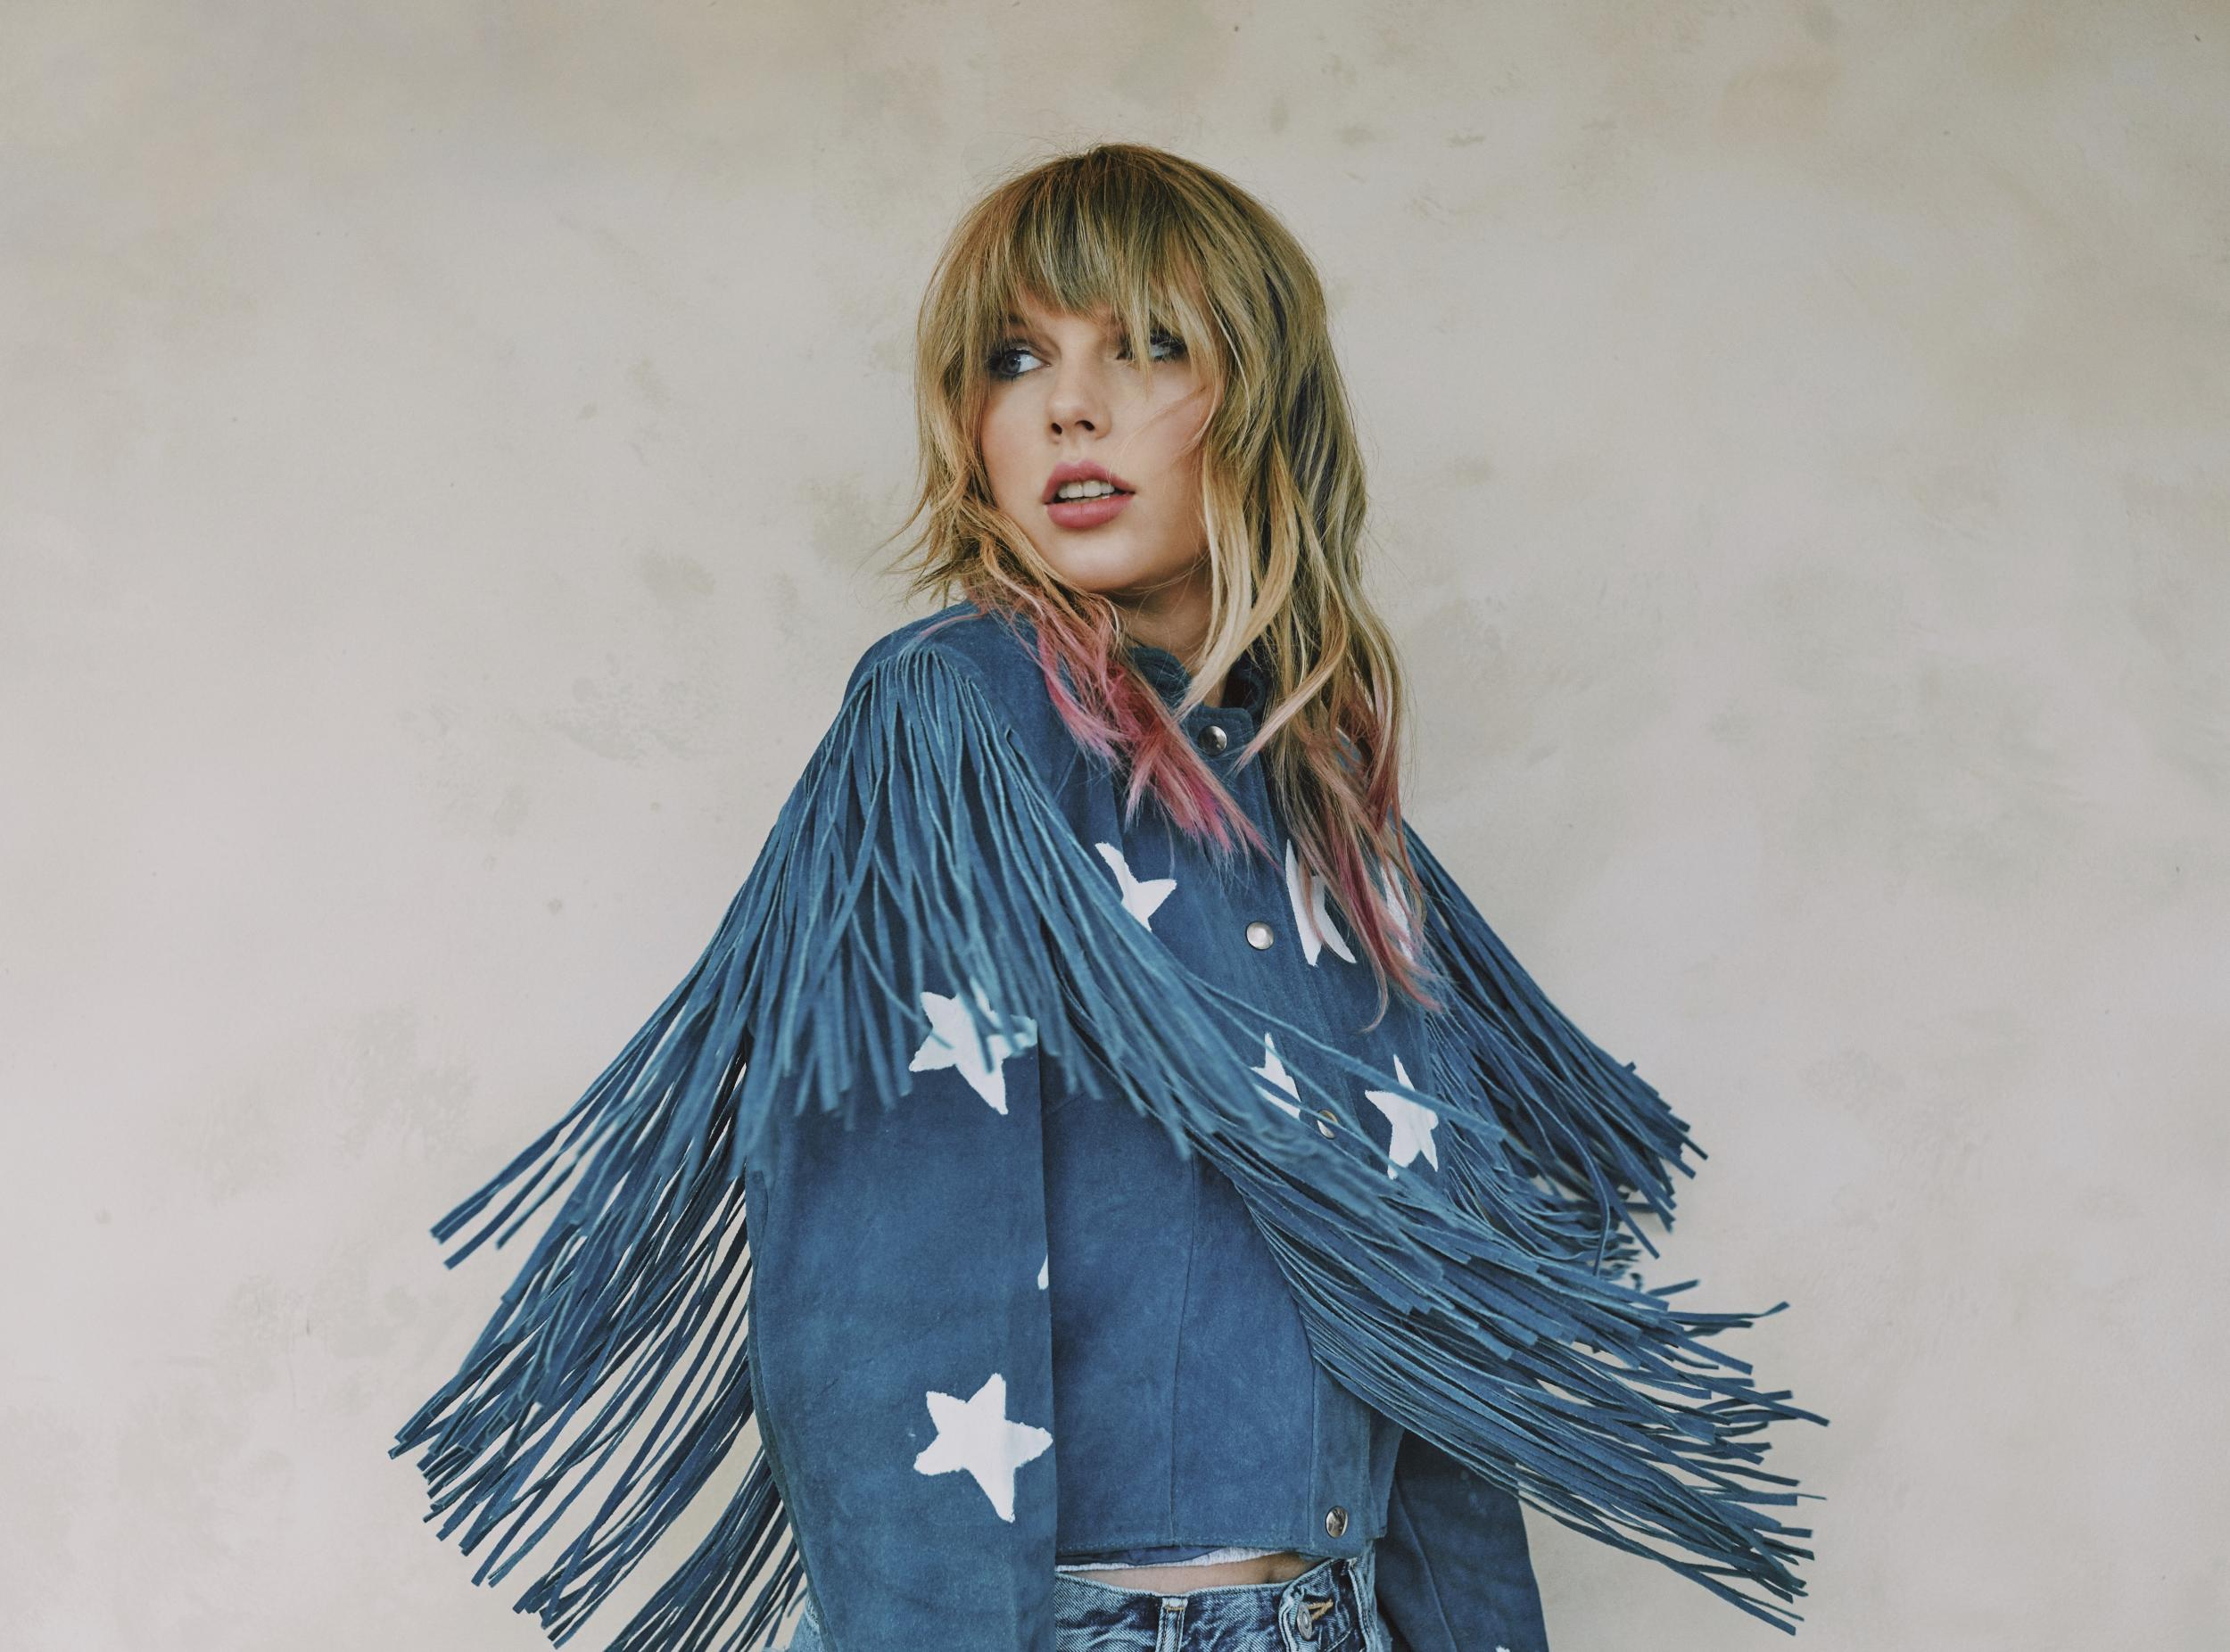 Taylor Swift S 100 Album Tracks Ranked The Independent The Independent